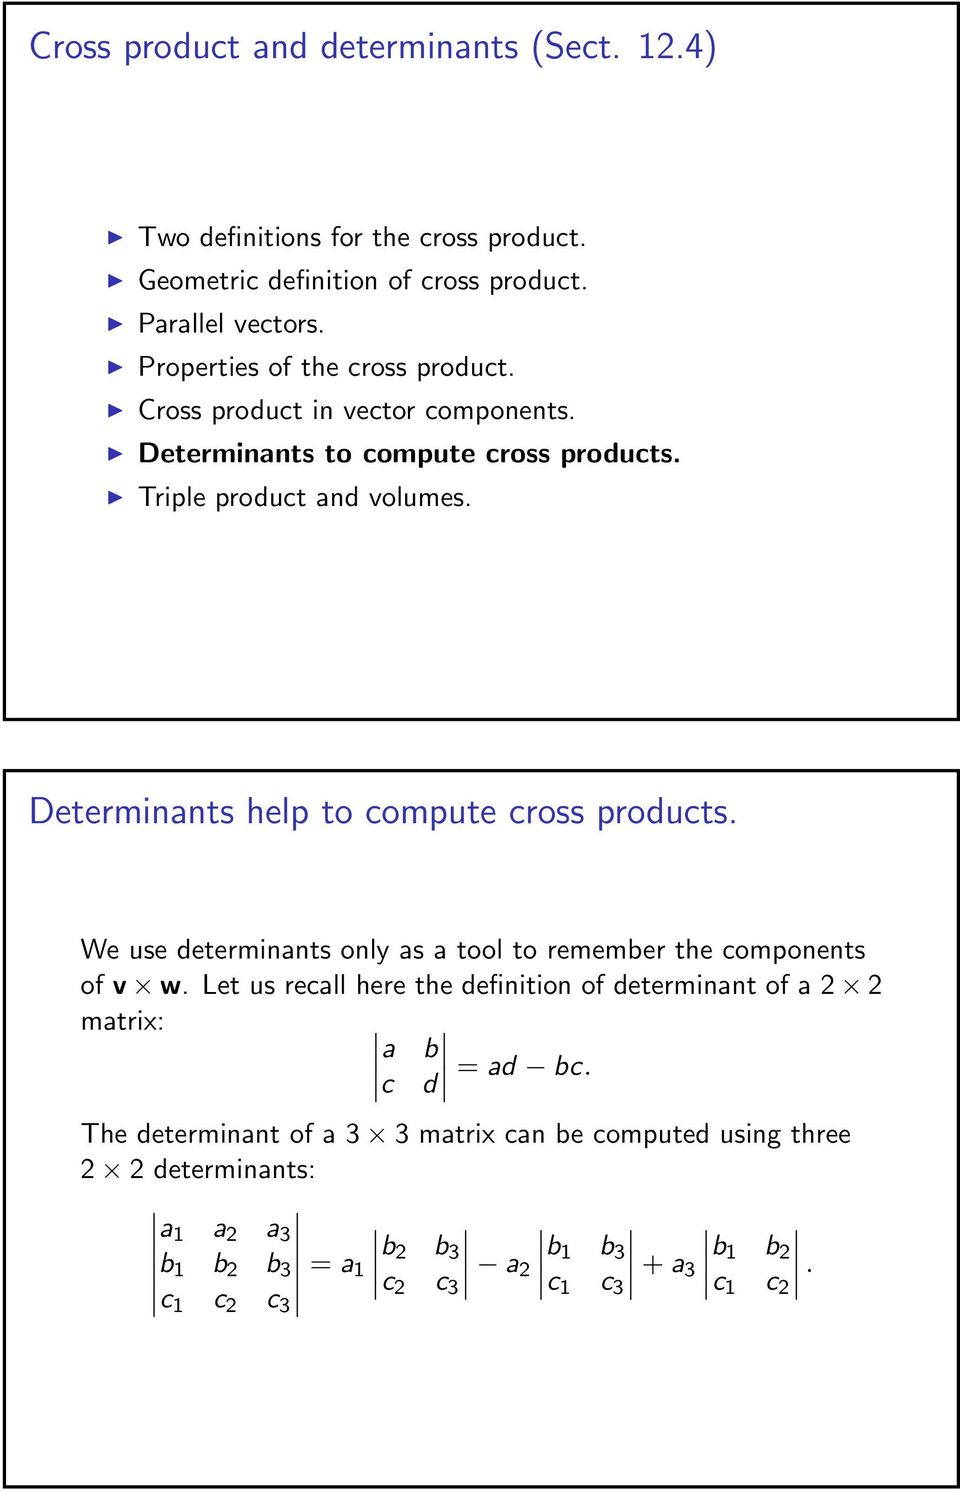 Determinants help to compute cross products. e use determinants only as a tool to remember the components of v w.